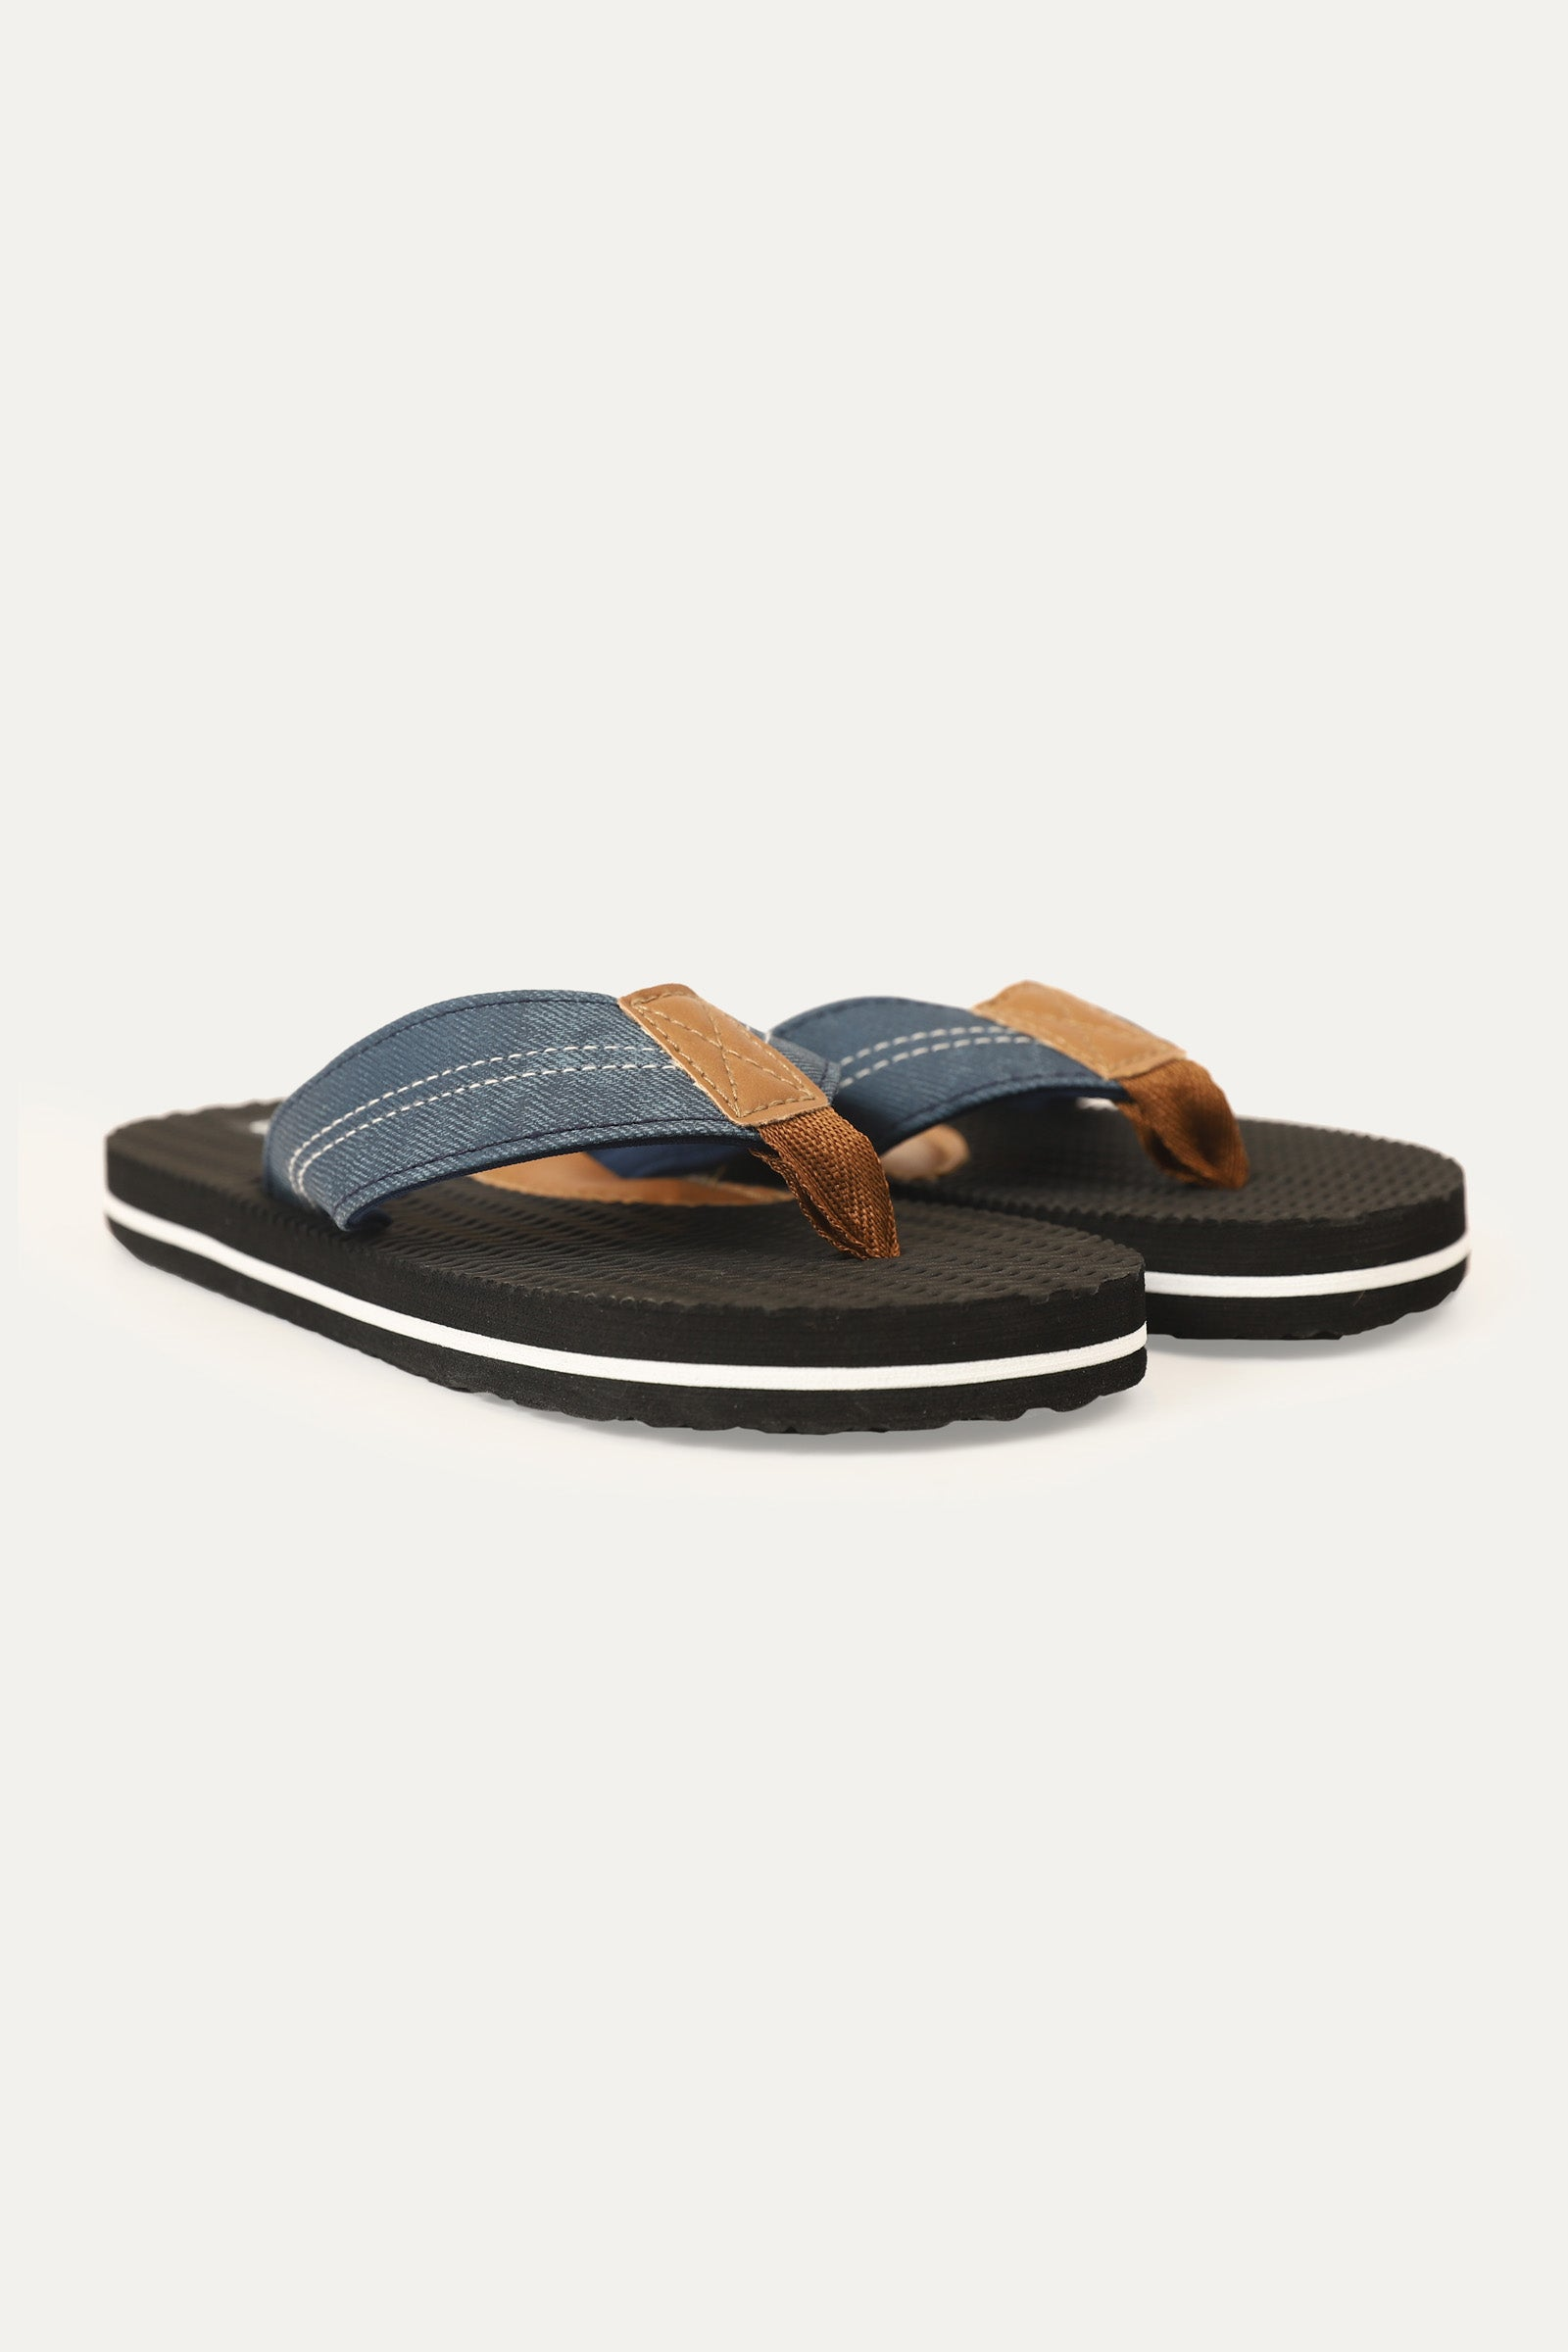 Outfitters Flip Flop